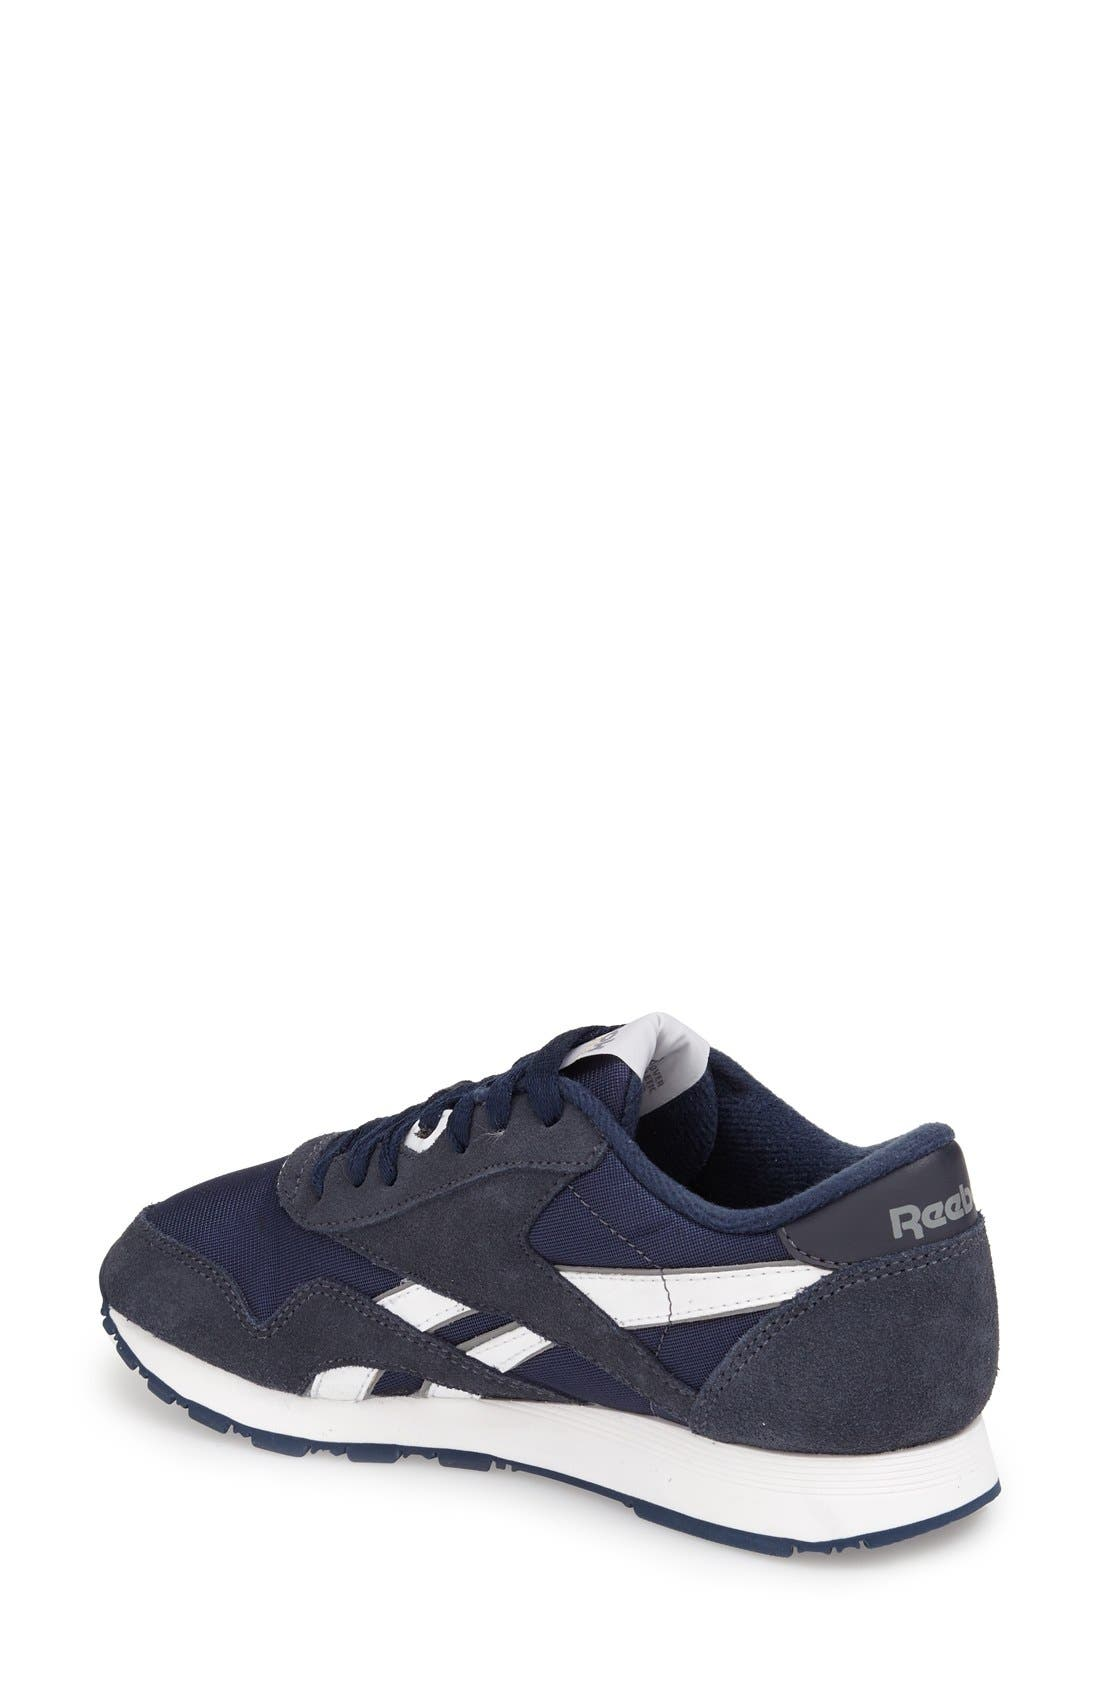 Classic Nylon Sneaker,                             Alternate thumbnail 2, color,                             Team Navy/ Platinum